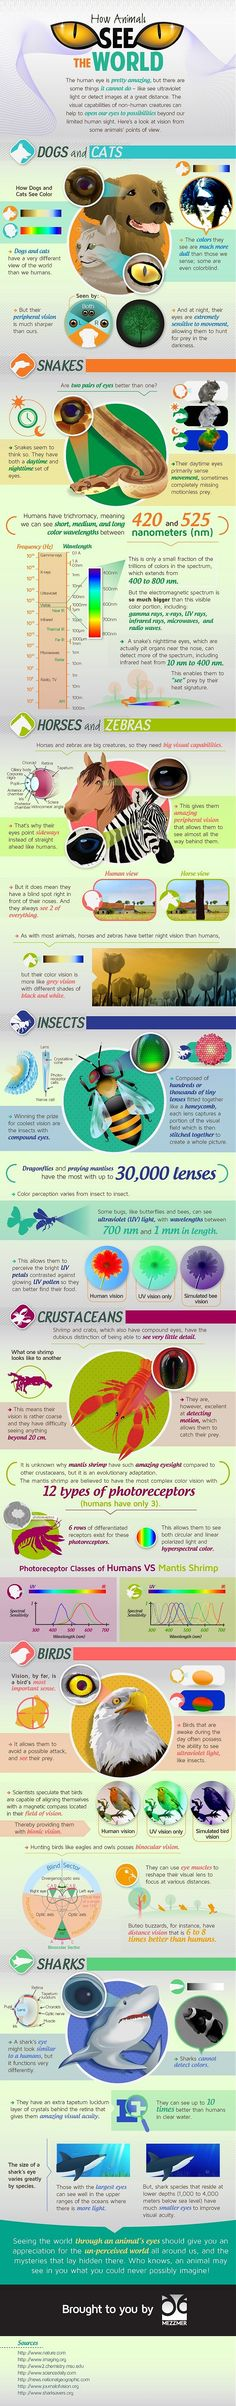 How Animals See the World [Infographic]